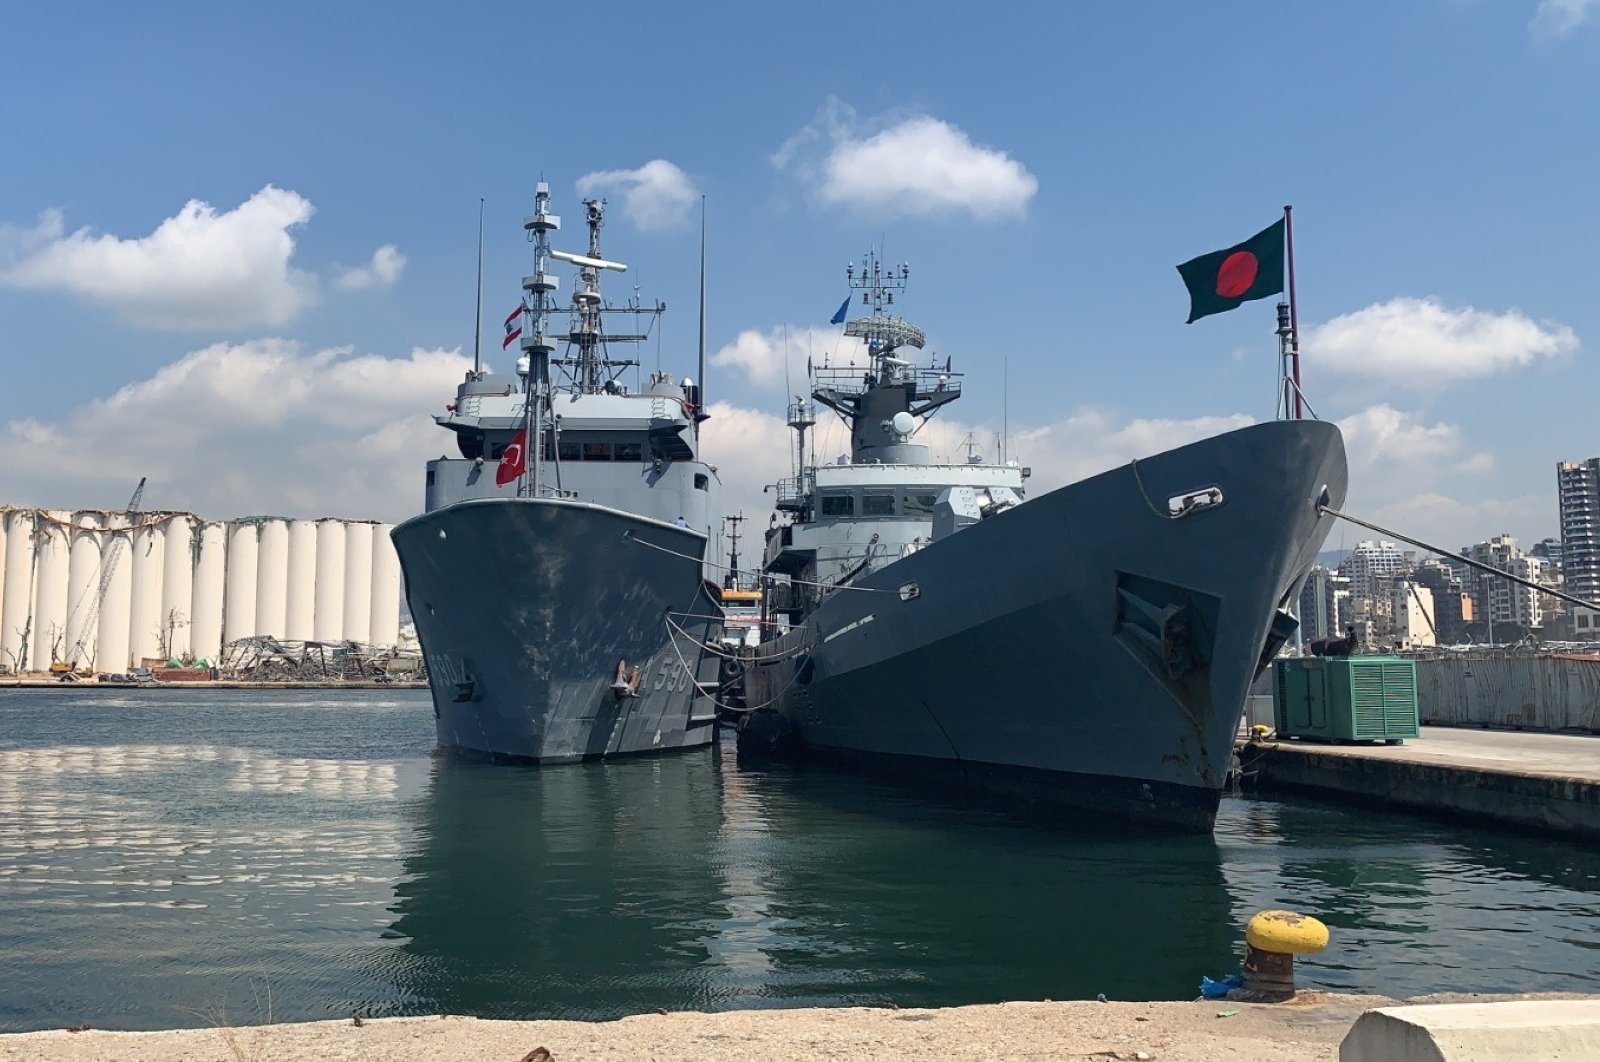 BNS BIJOY, a Bangladeshi naval vessel, will be repaired by Turkey after it was damaged at the Port of Beirut in an explosion, Beirut, Lebanon, Aug. 27, 2020. (IHA Photo)